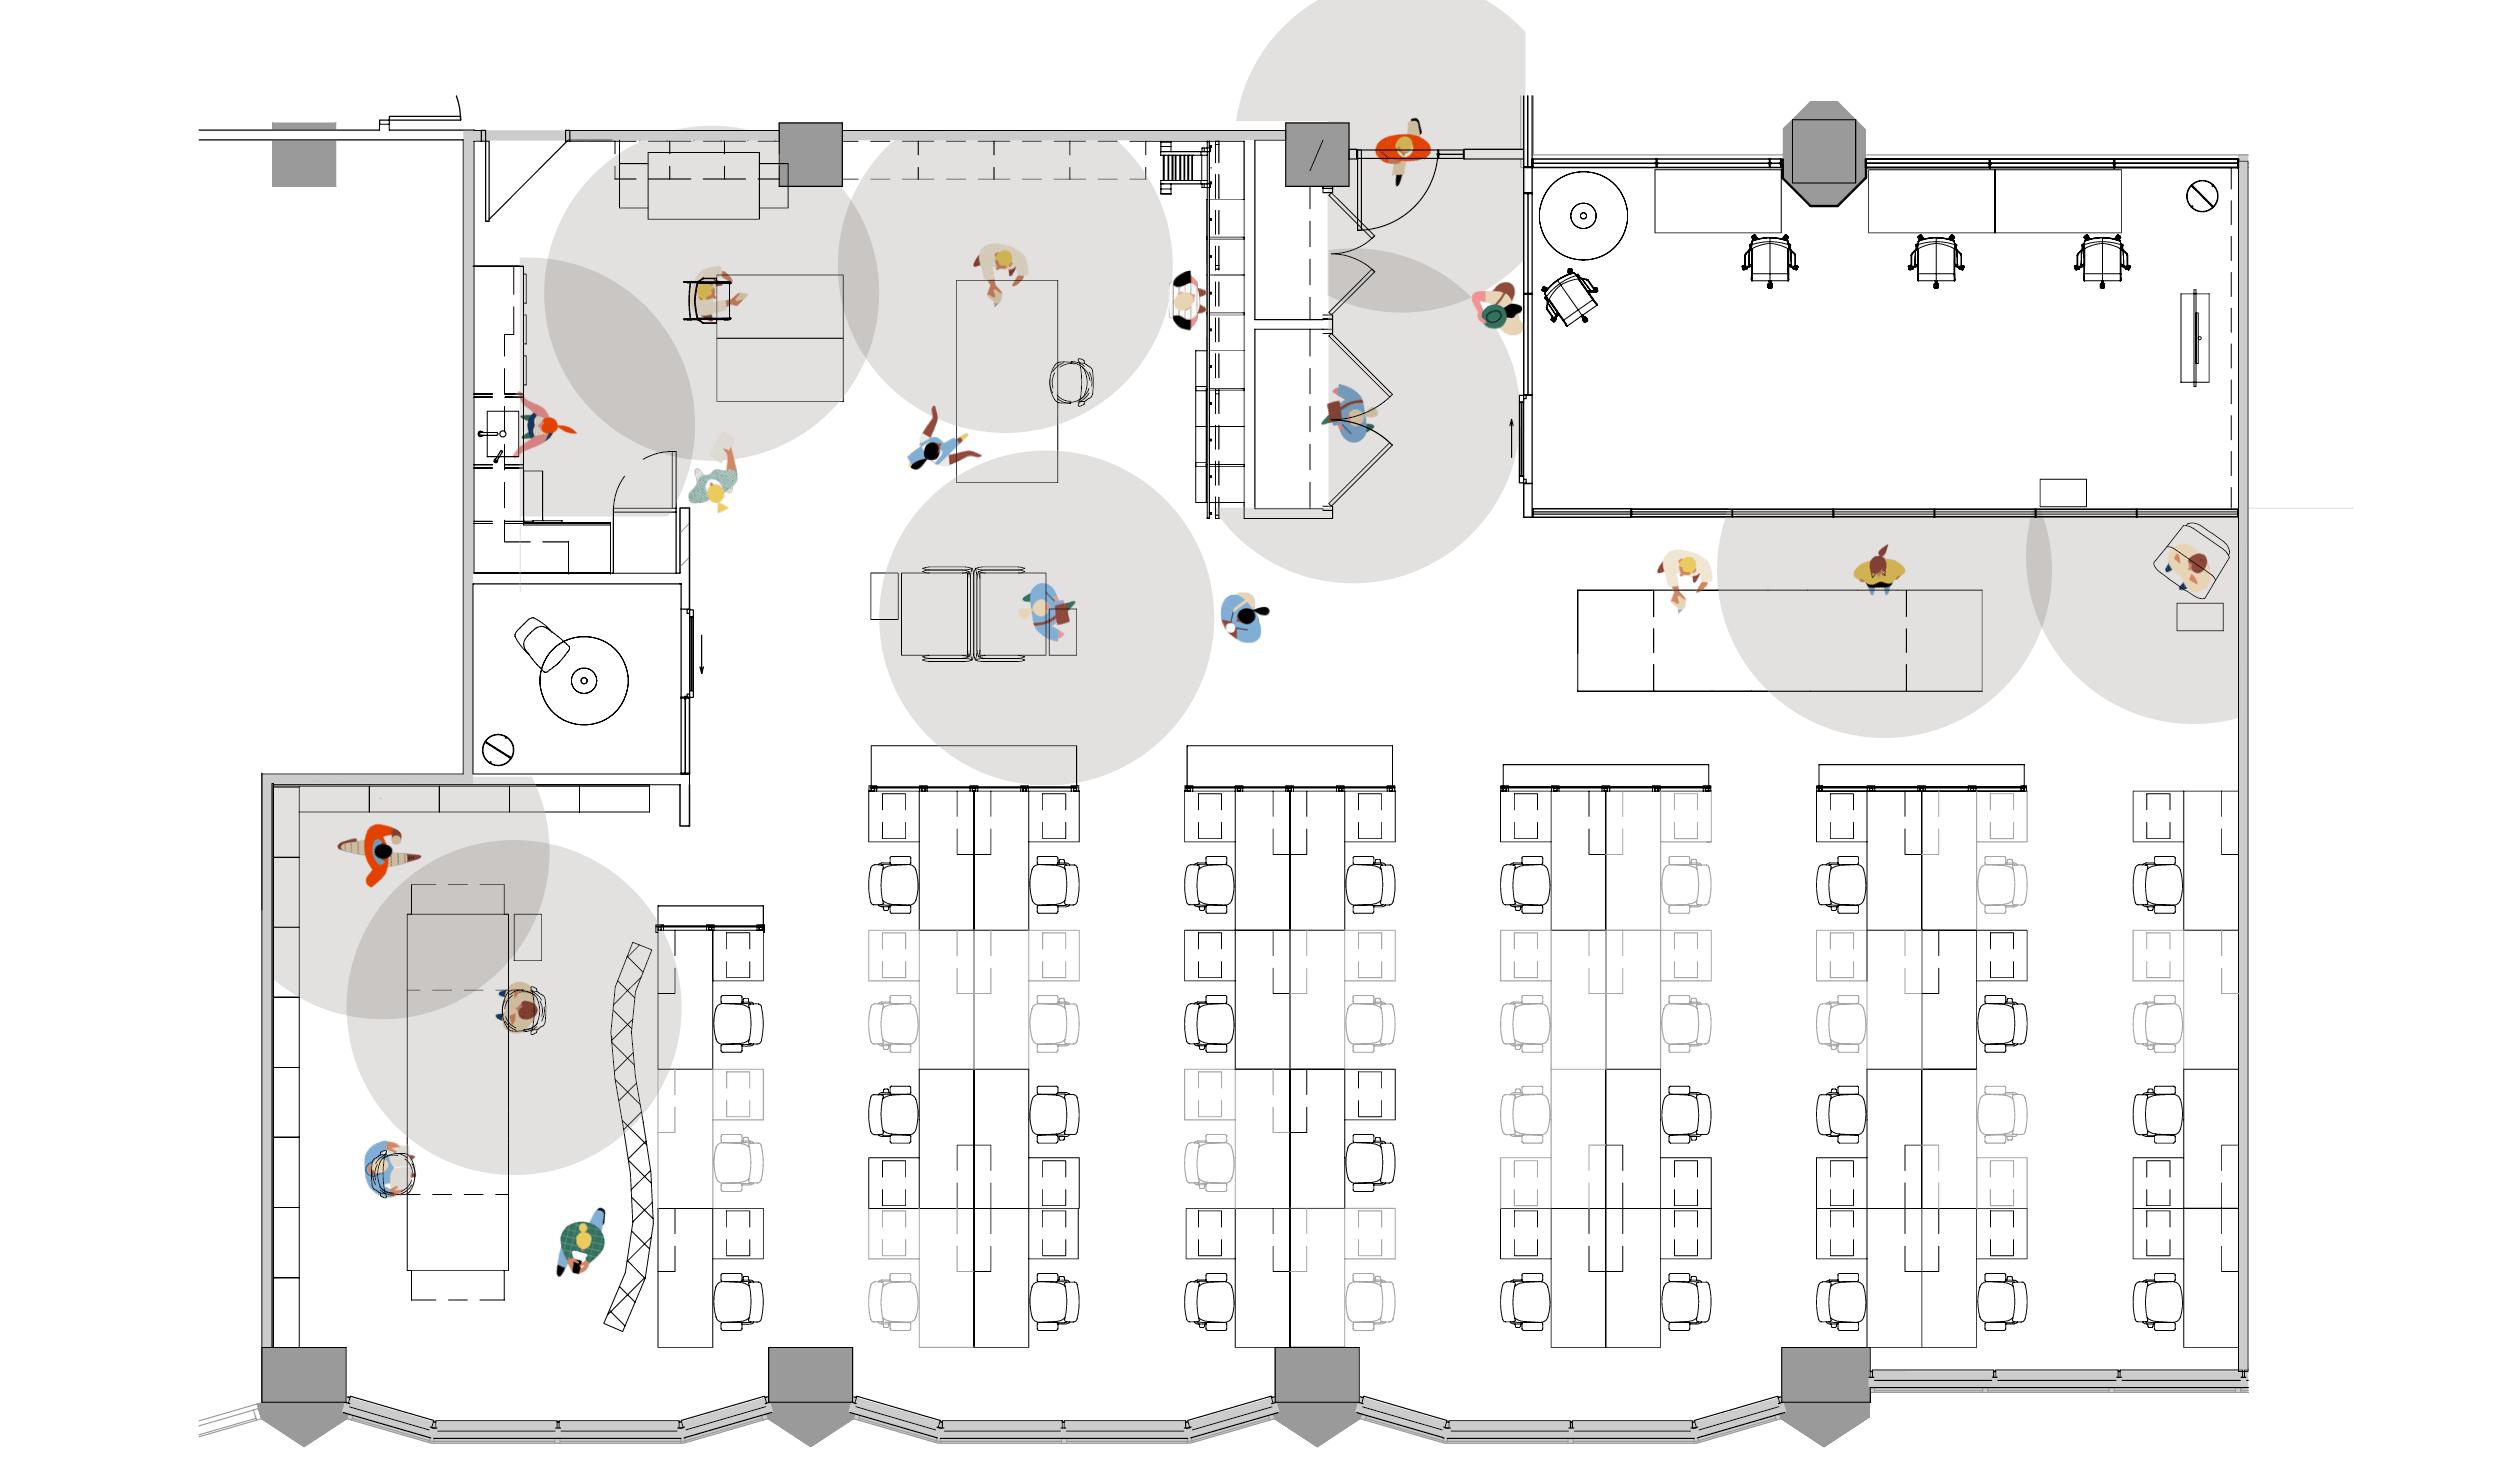 floor plan of an office space showing how many people can use common spaces while maintaining physical distancing